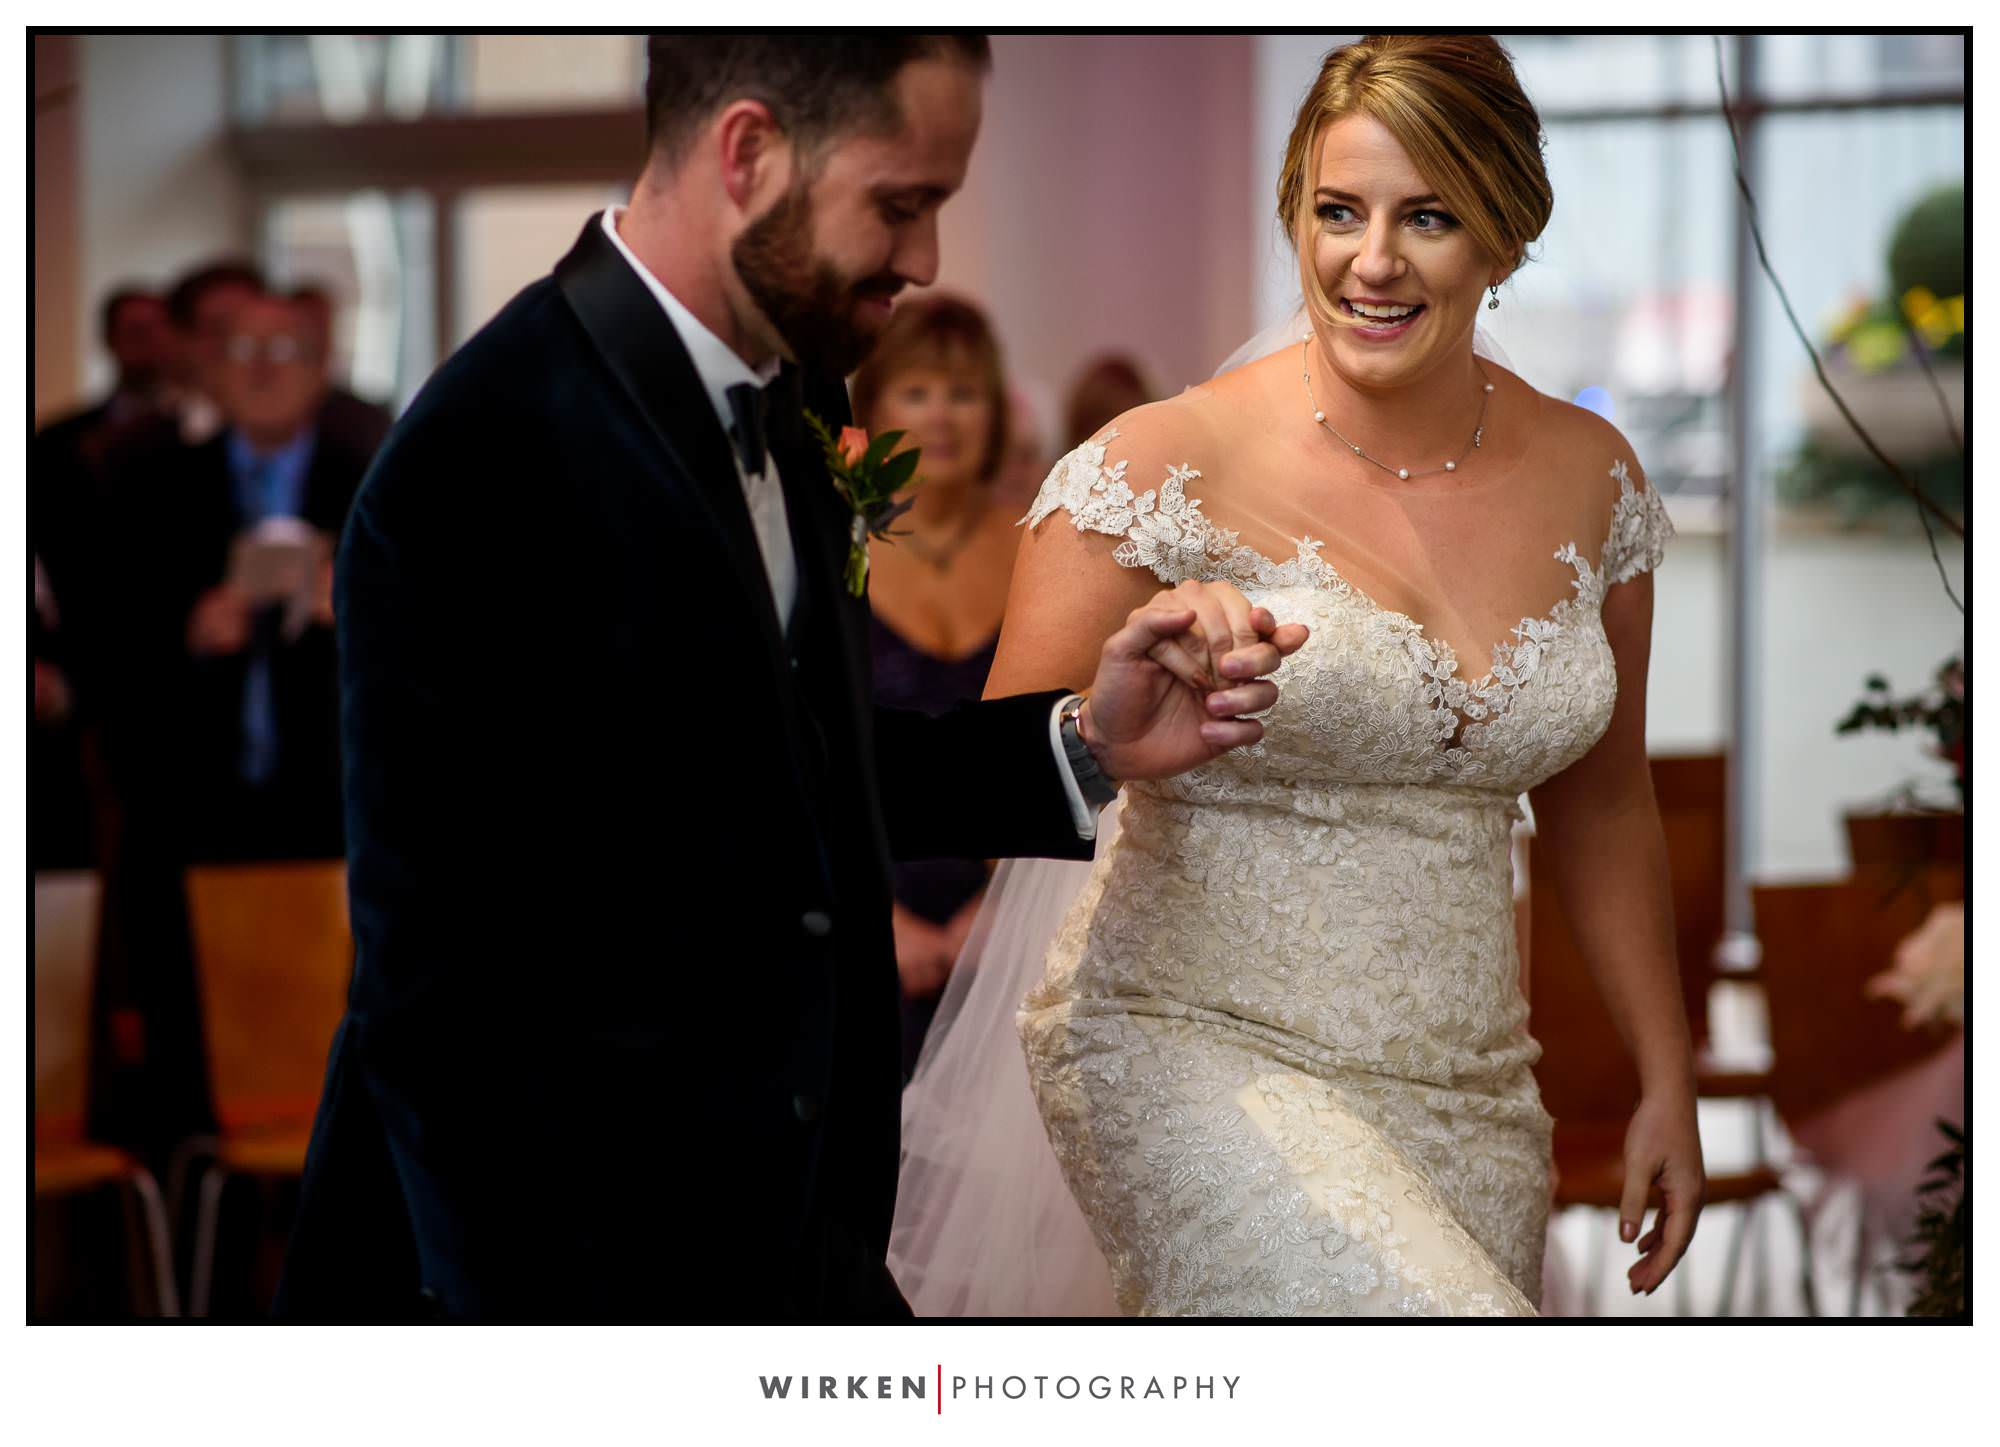 Leah walks to the alter at their ceremony at The Gallery Event Center